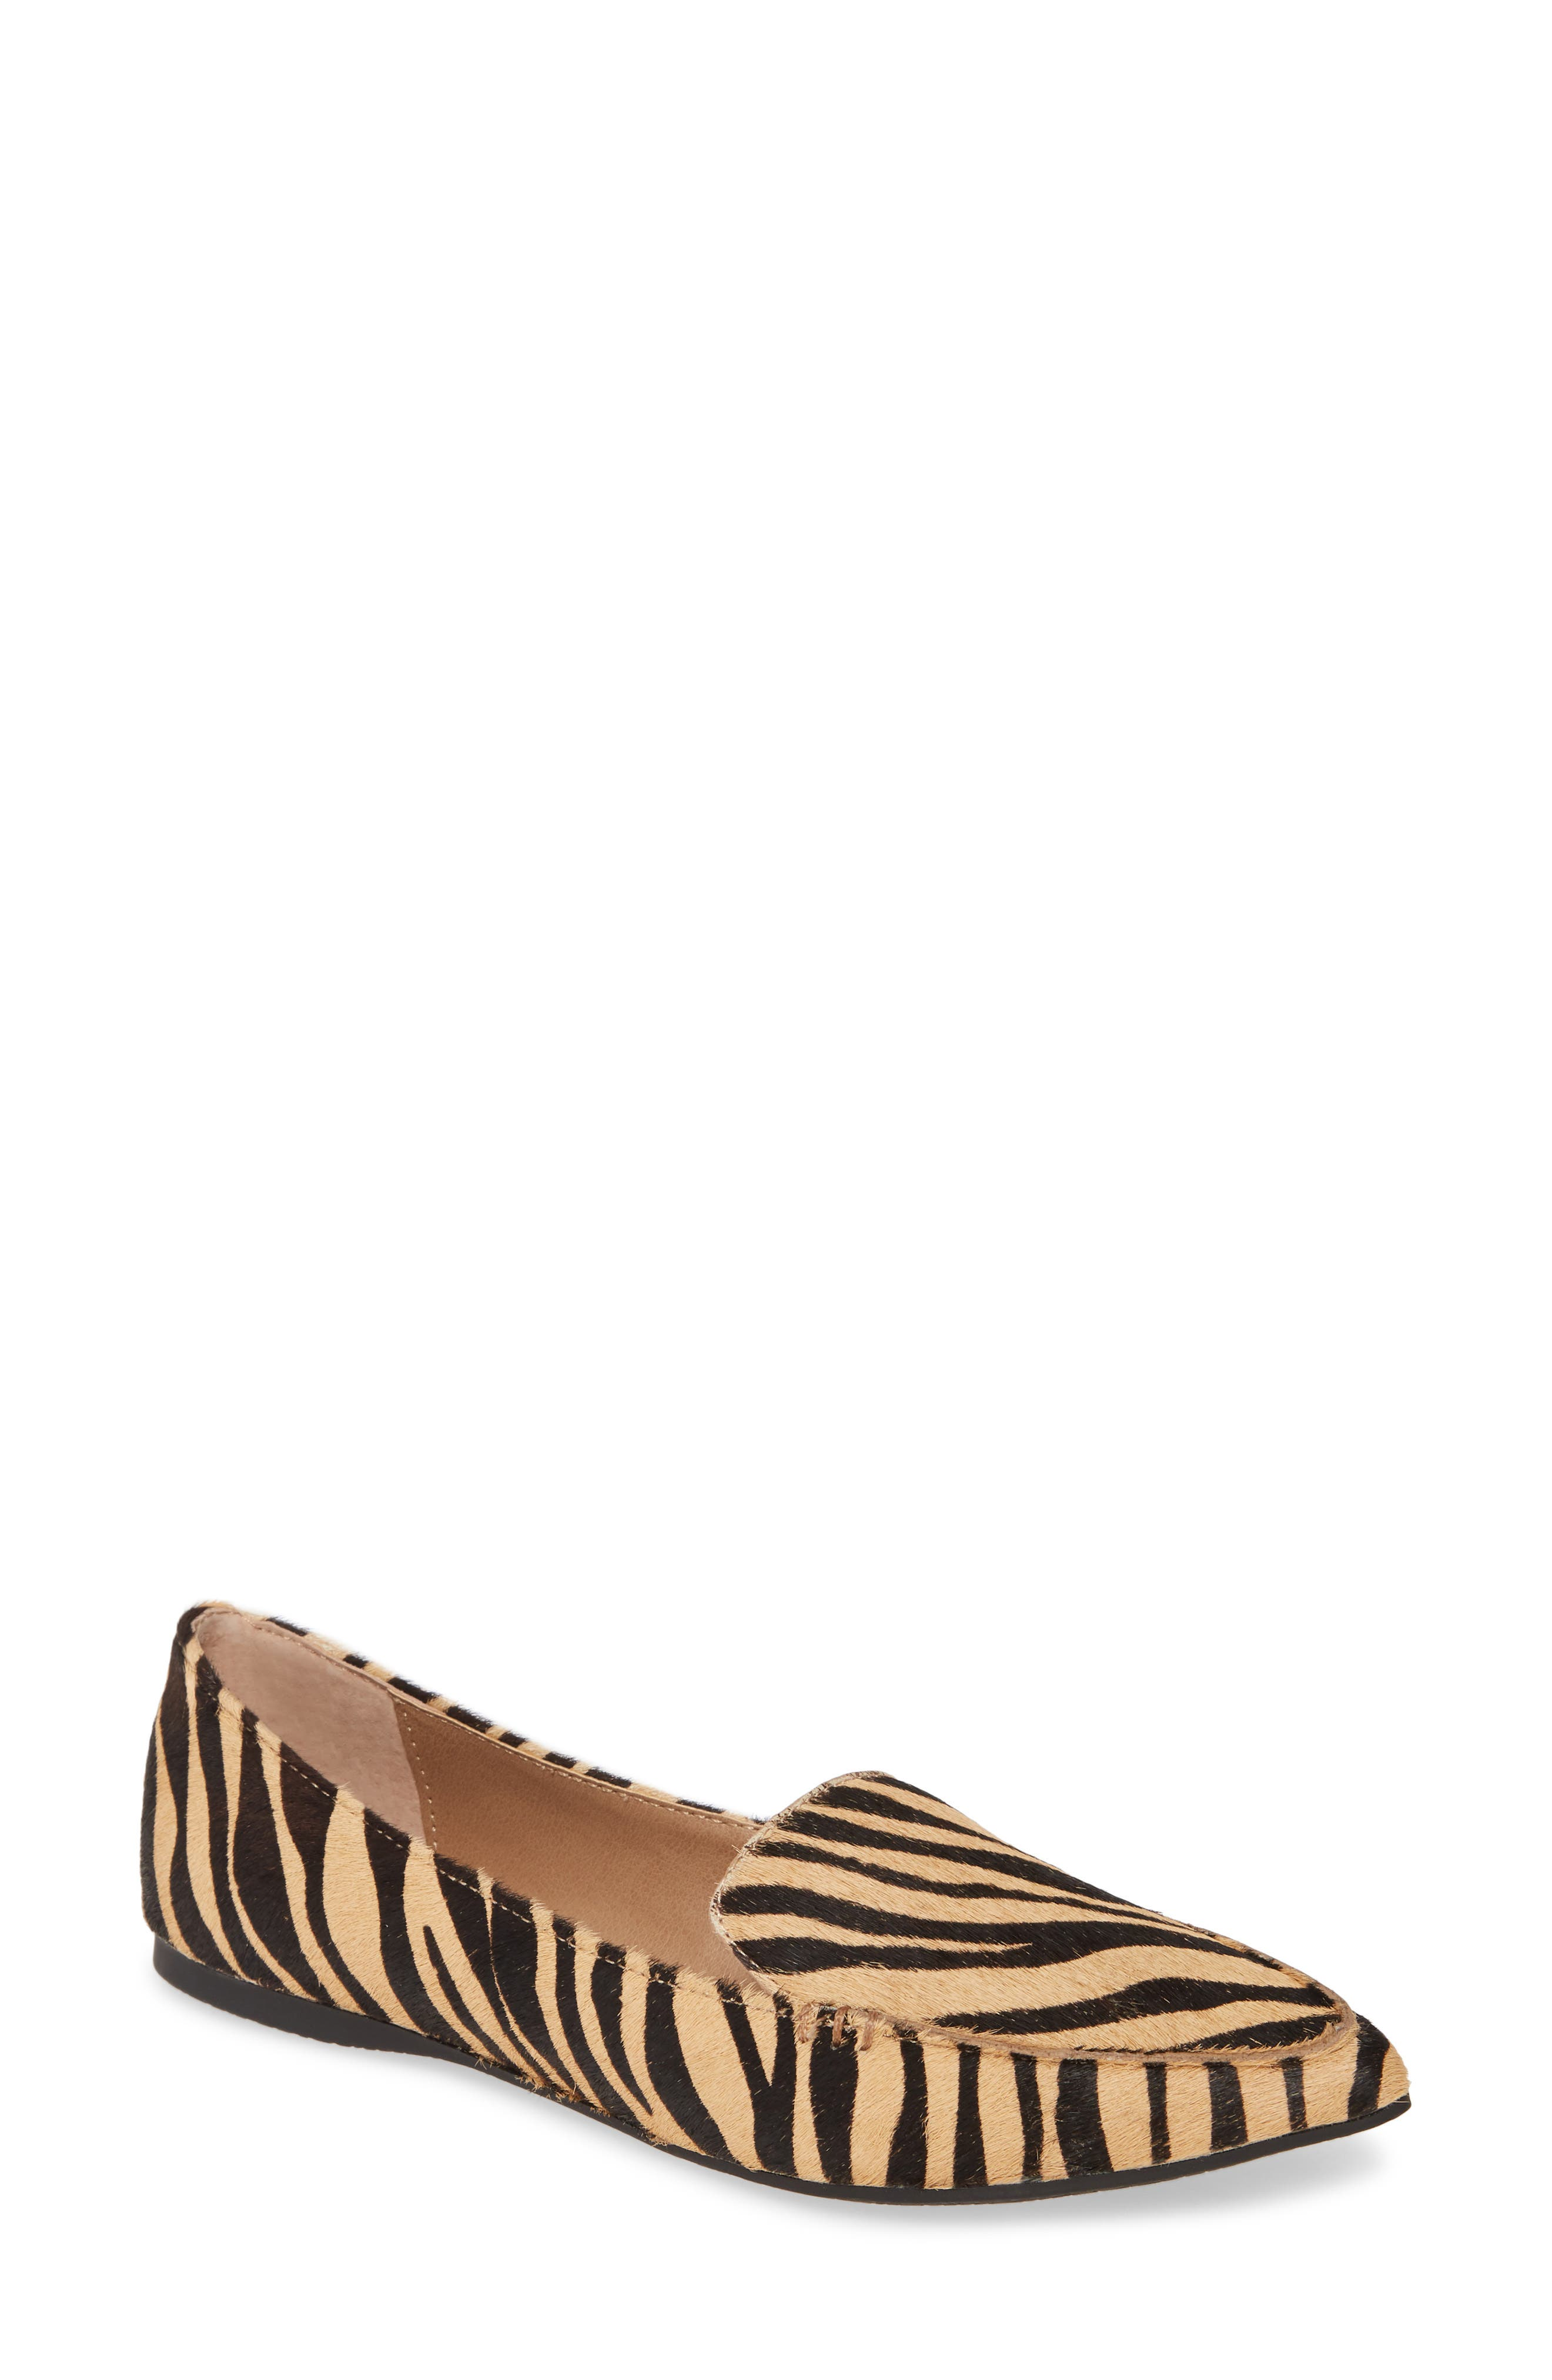 Steve Madden Feather-L Genuine Calf Hair Loafer Flat (Women)